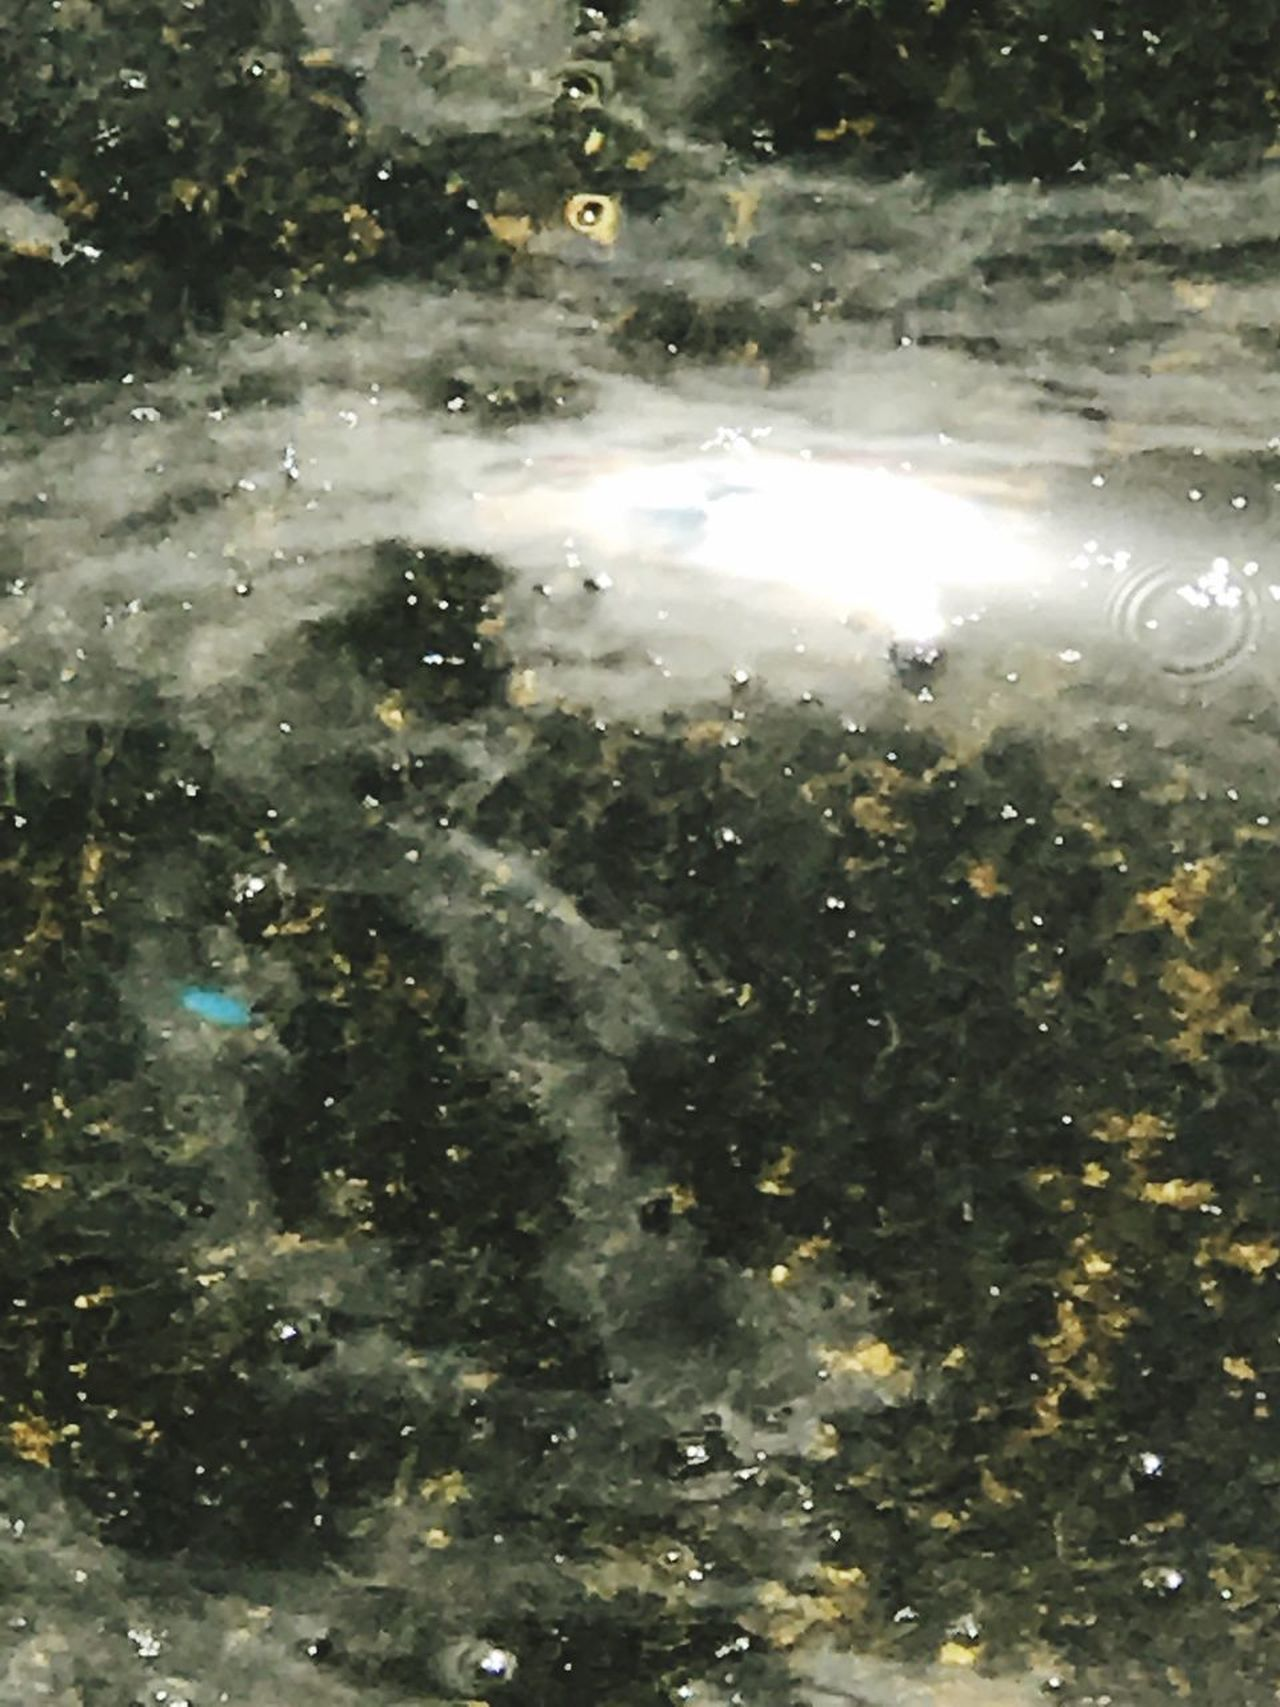 Backgrounds Water Full Frame No People Illuminated Star - Space Underwater Space Night Outdoors Nature Animal Themes Satellite View Refraction Close-up Astronomy Galaxy UnderSea